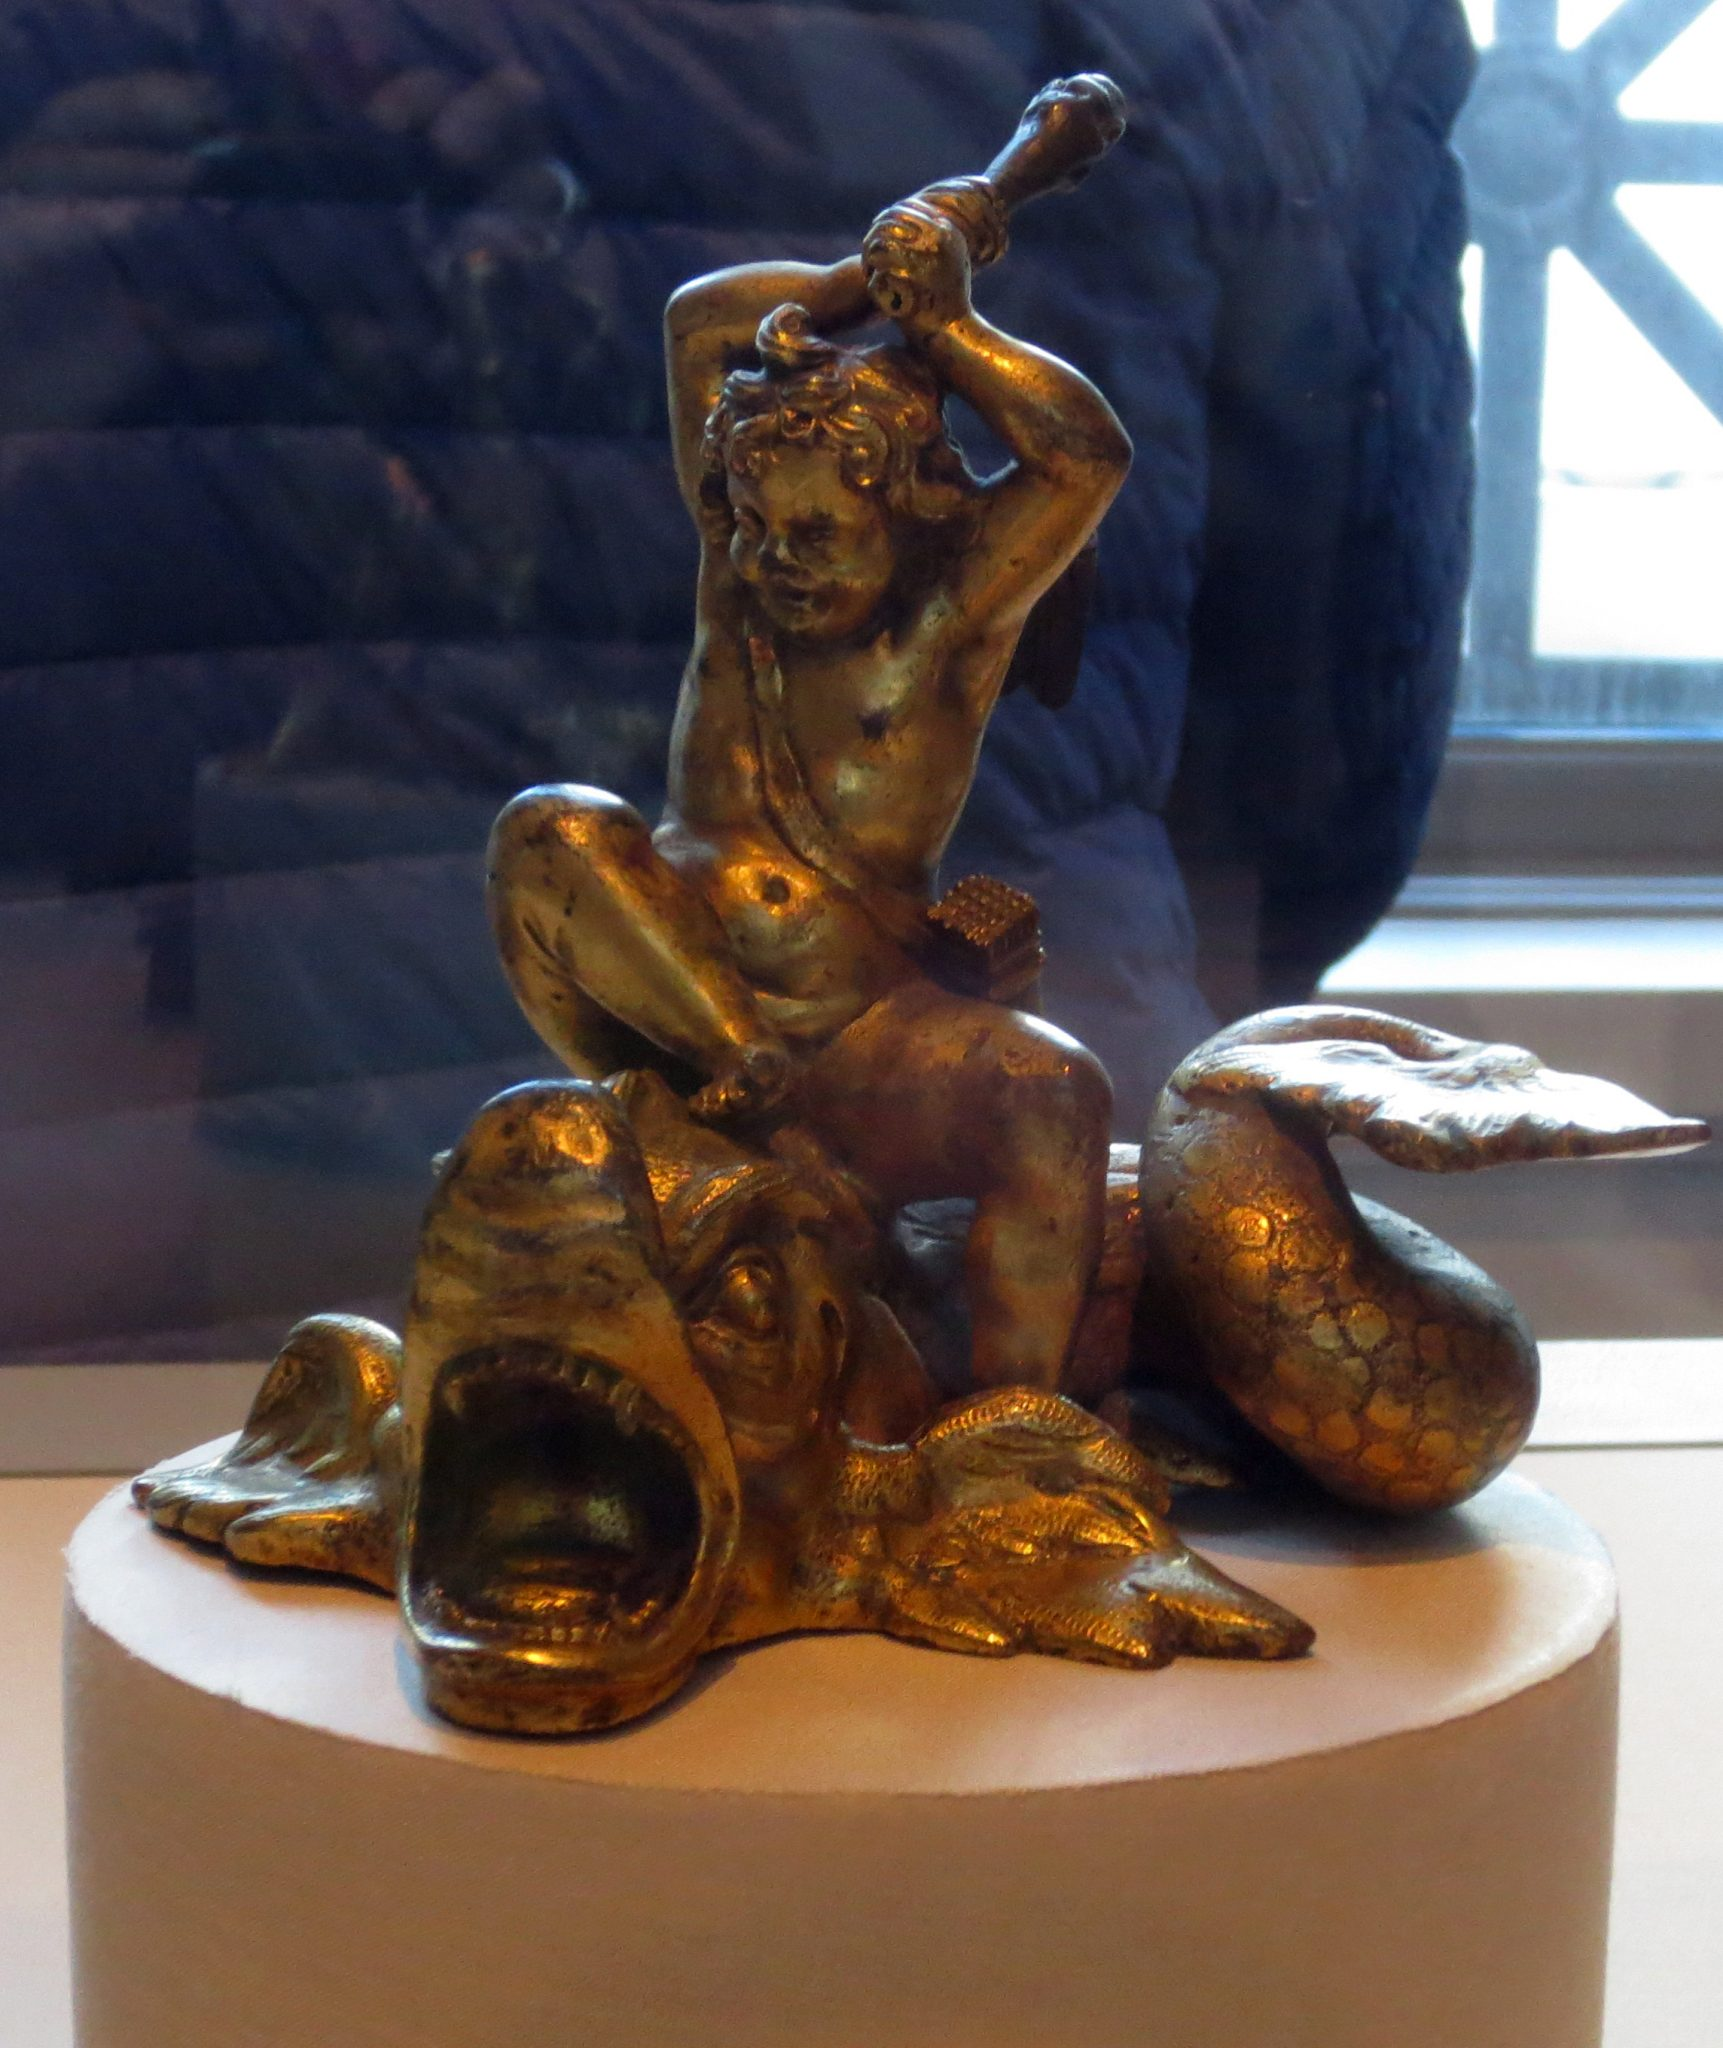 Venetian, Cupid on a Dolphin, late 16th or early 17th century. On loan by the Louvre to Washington's National Gallery. Photo: Dianne L. Durante